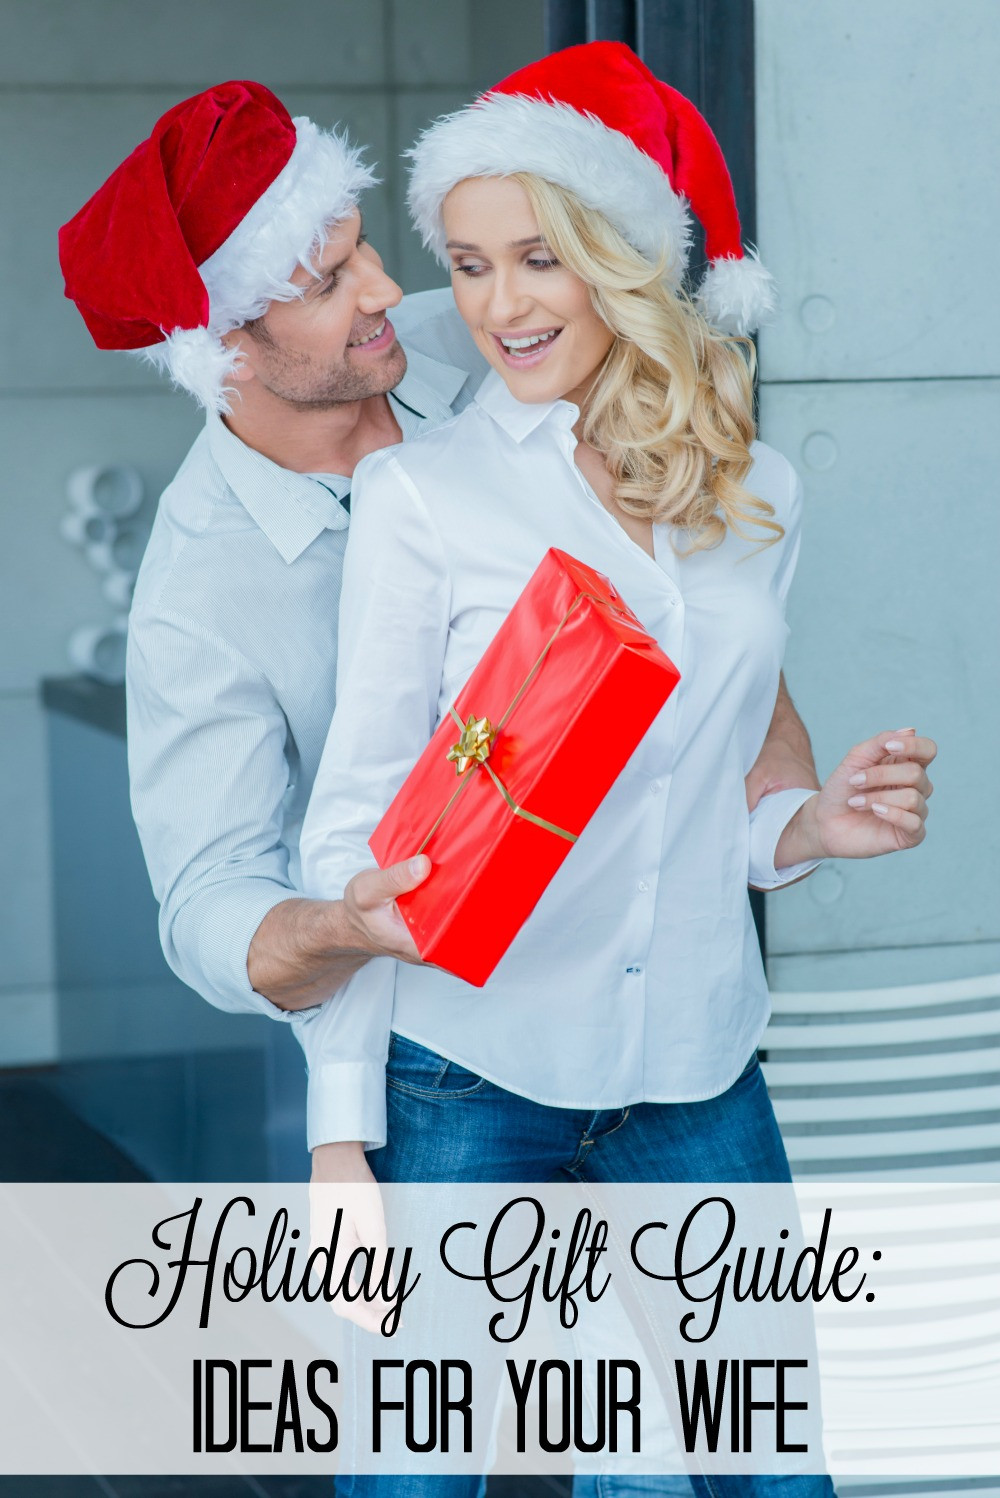 Best ideas about Wife Gift Ideas . Save or Pin Holiday Gift Guide Ideas for the Wife Now.